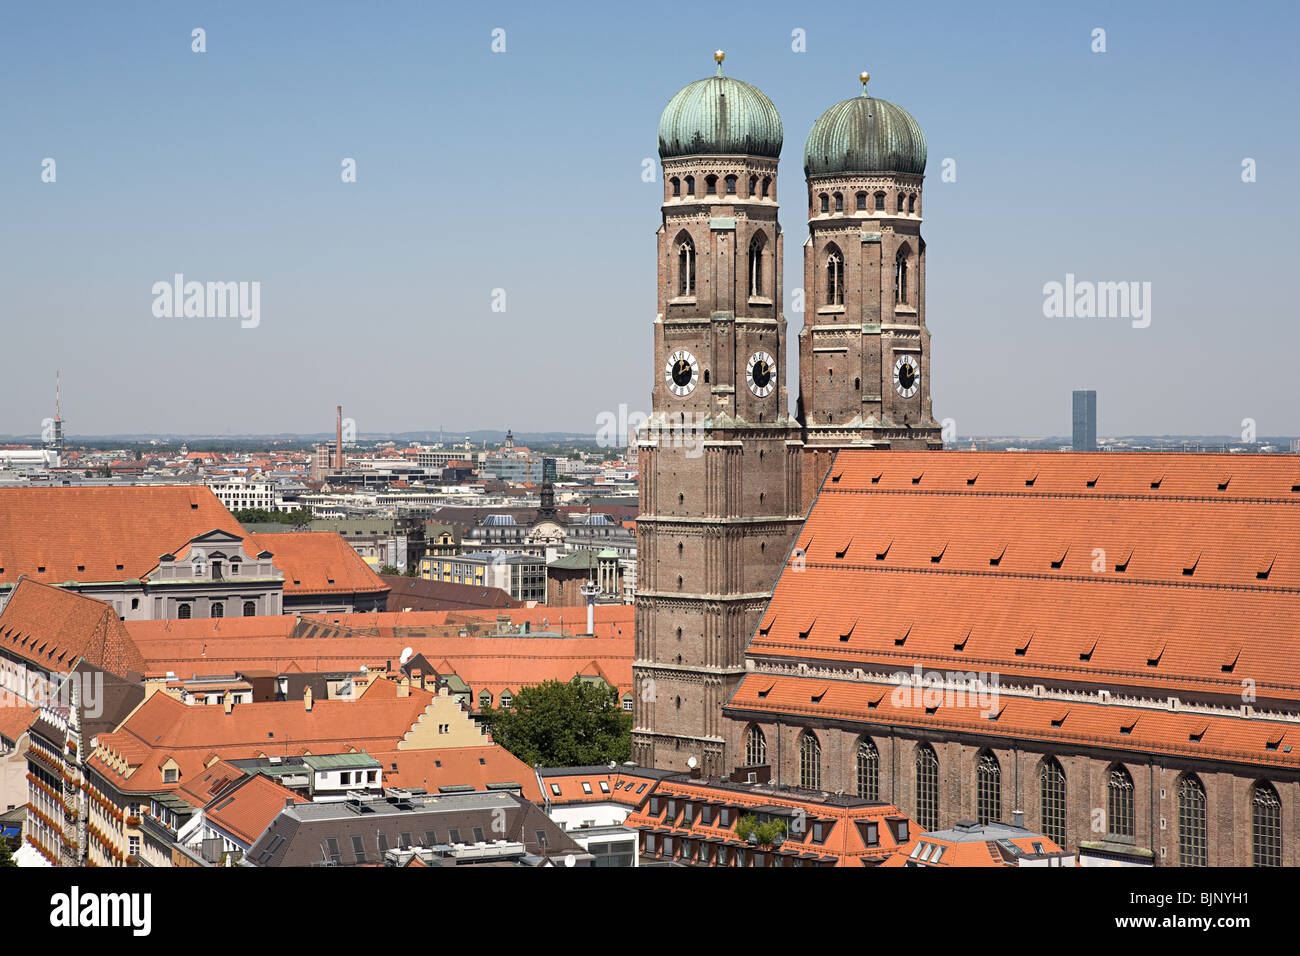 La frauenkirche de Munich Photo Stock